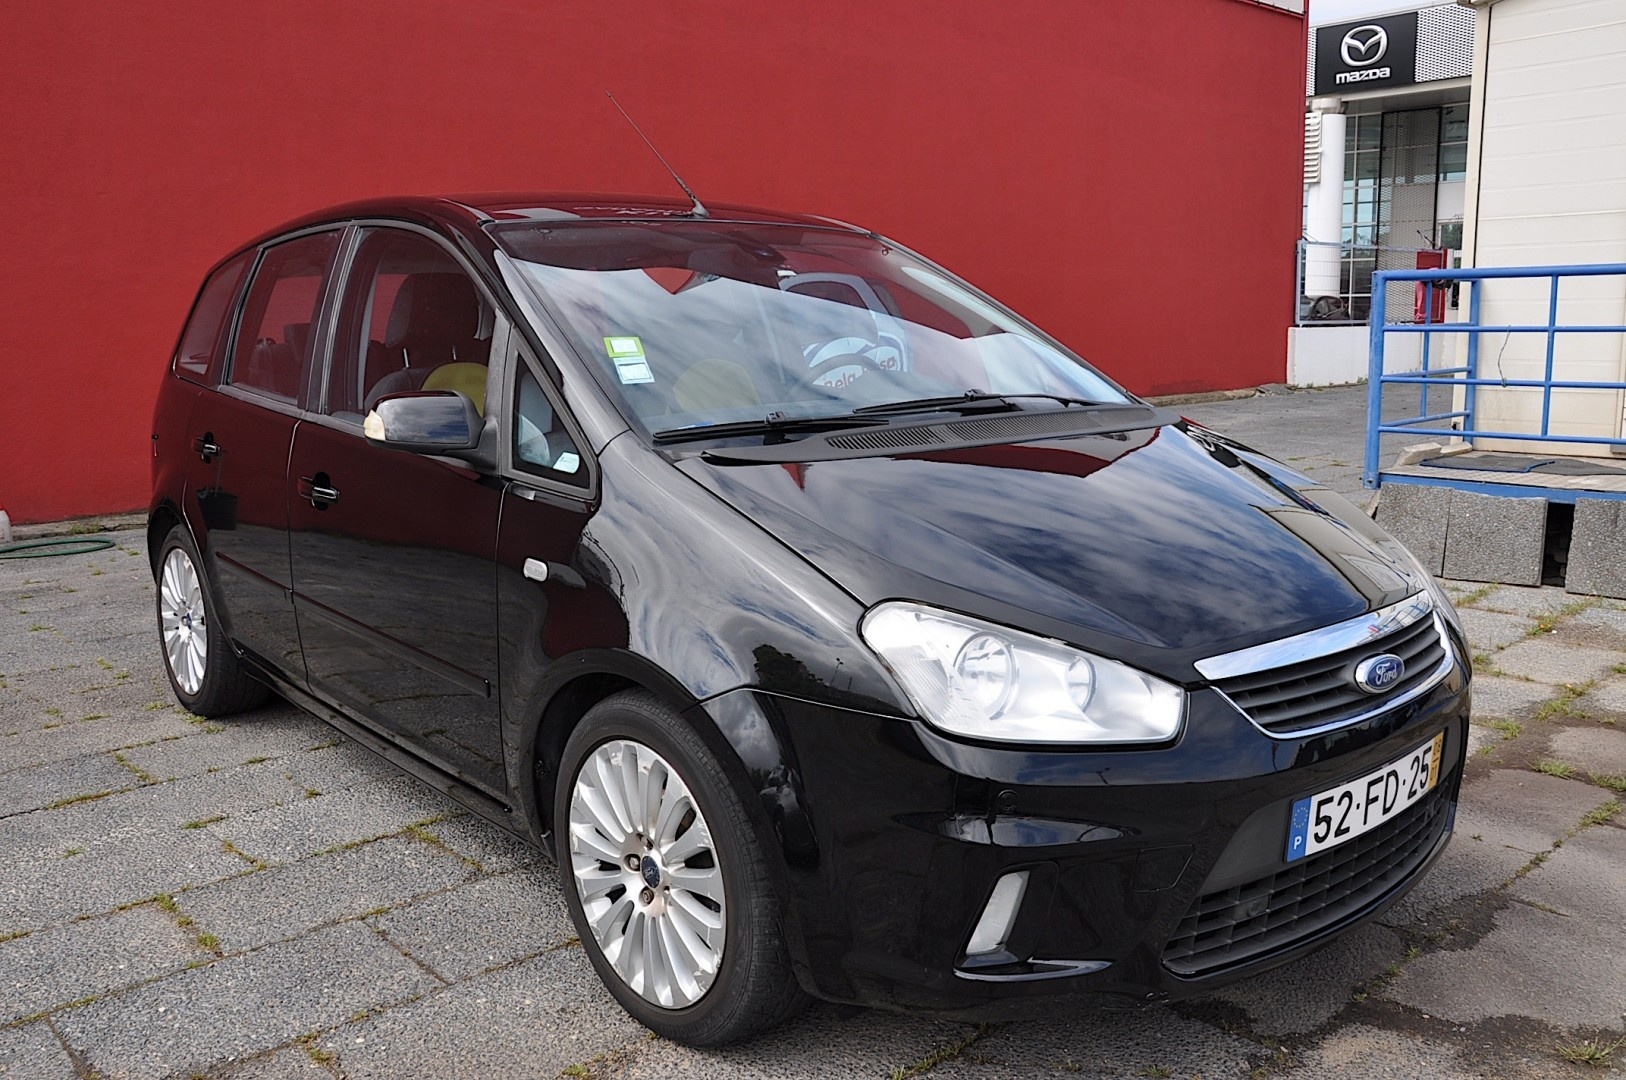 Ford C-Max 1.6Tdci